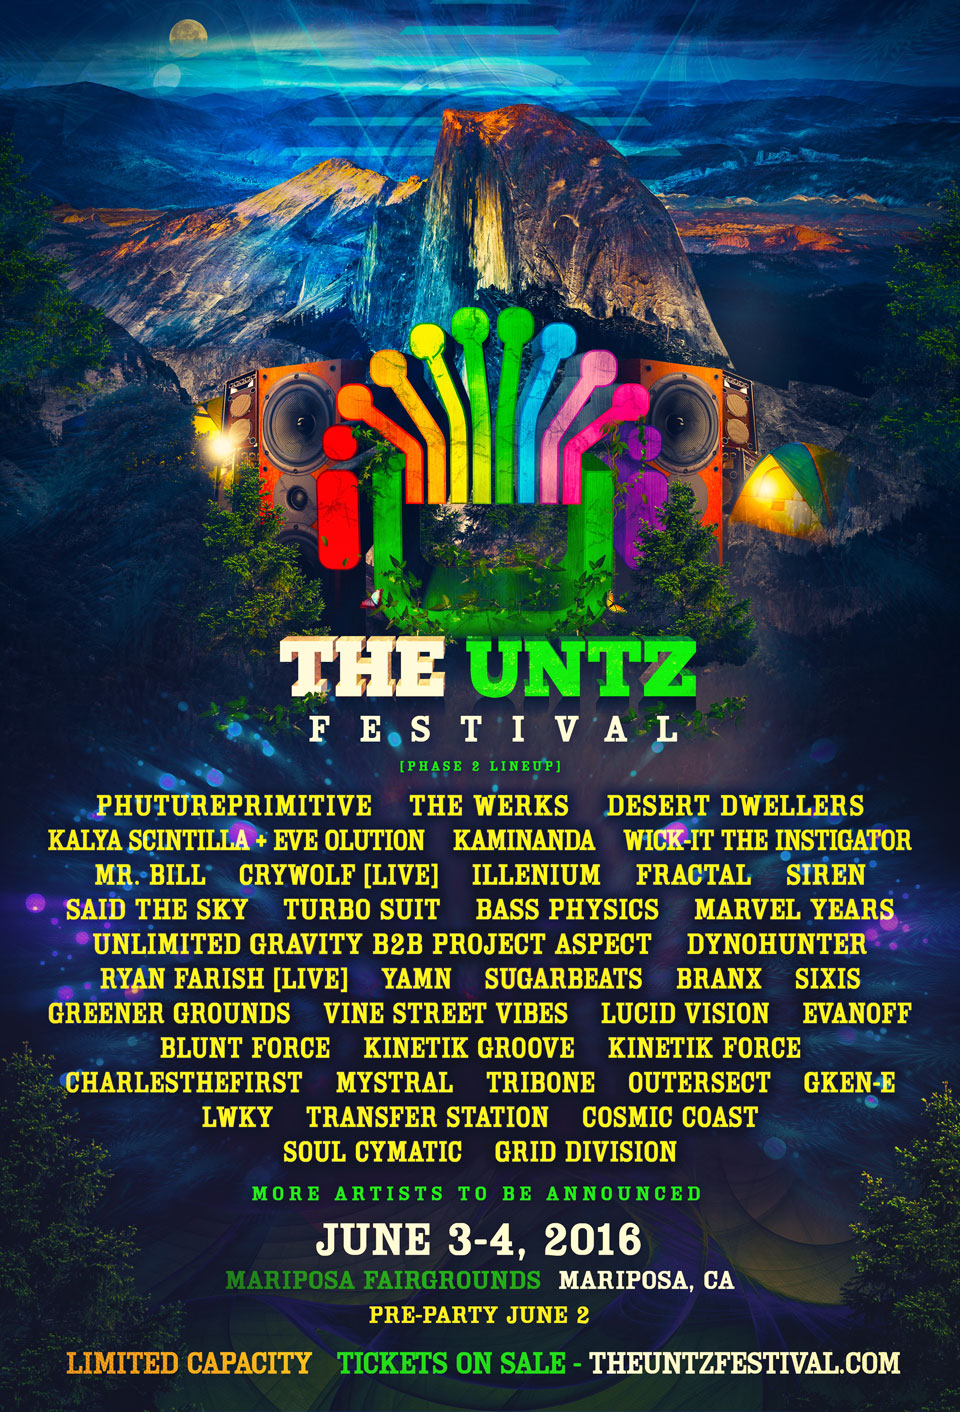 The Untz Festival Phase2